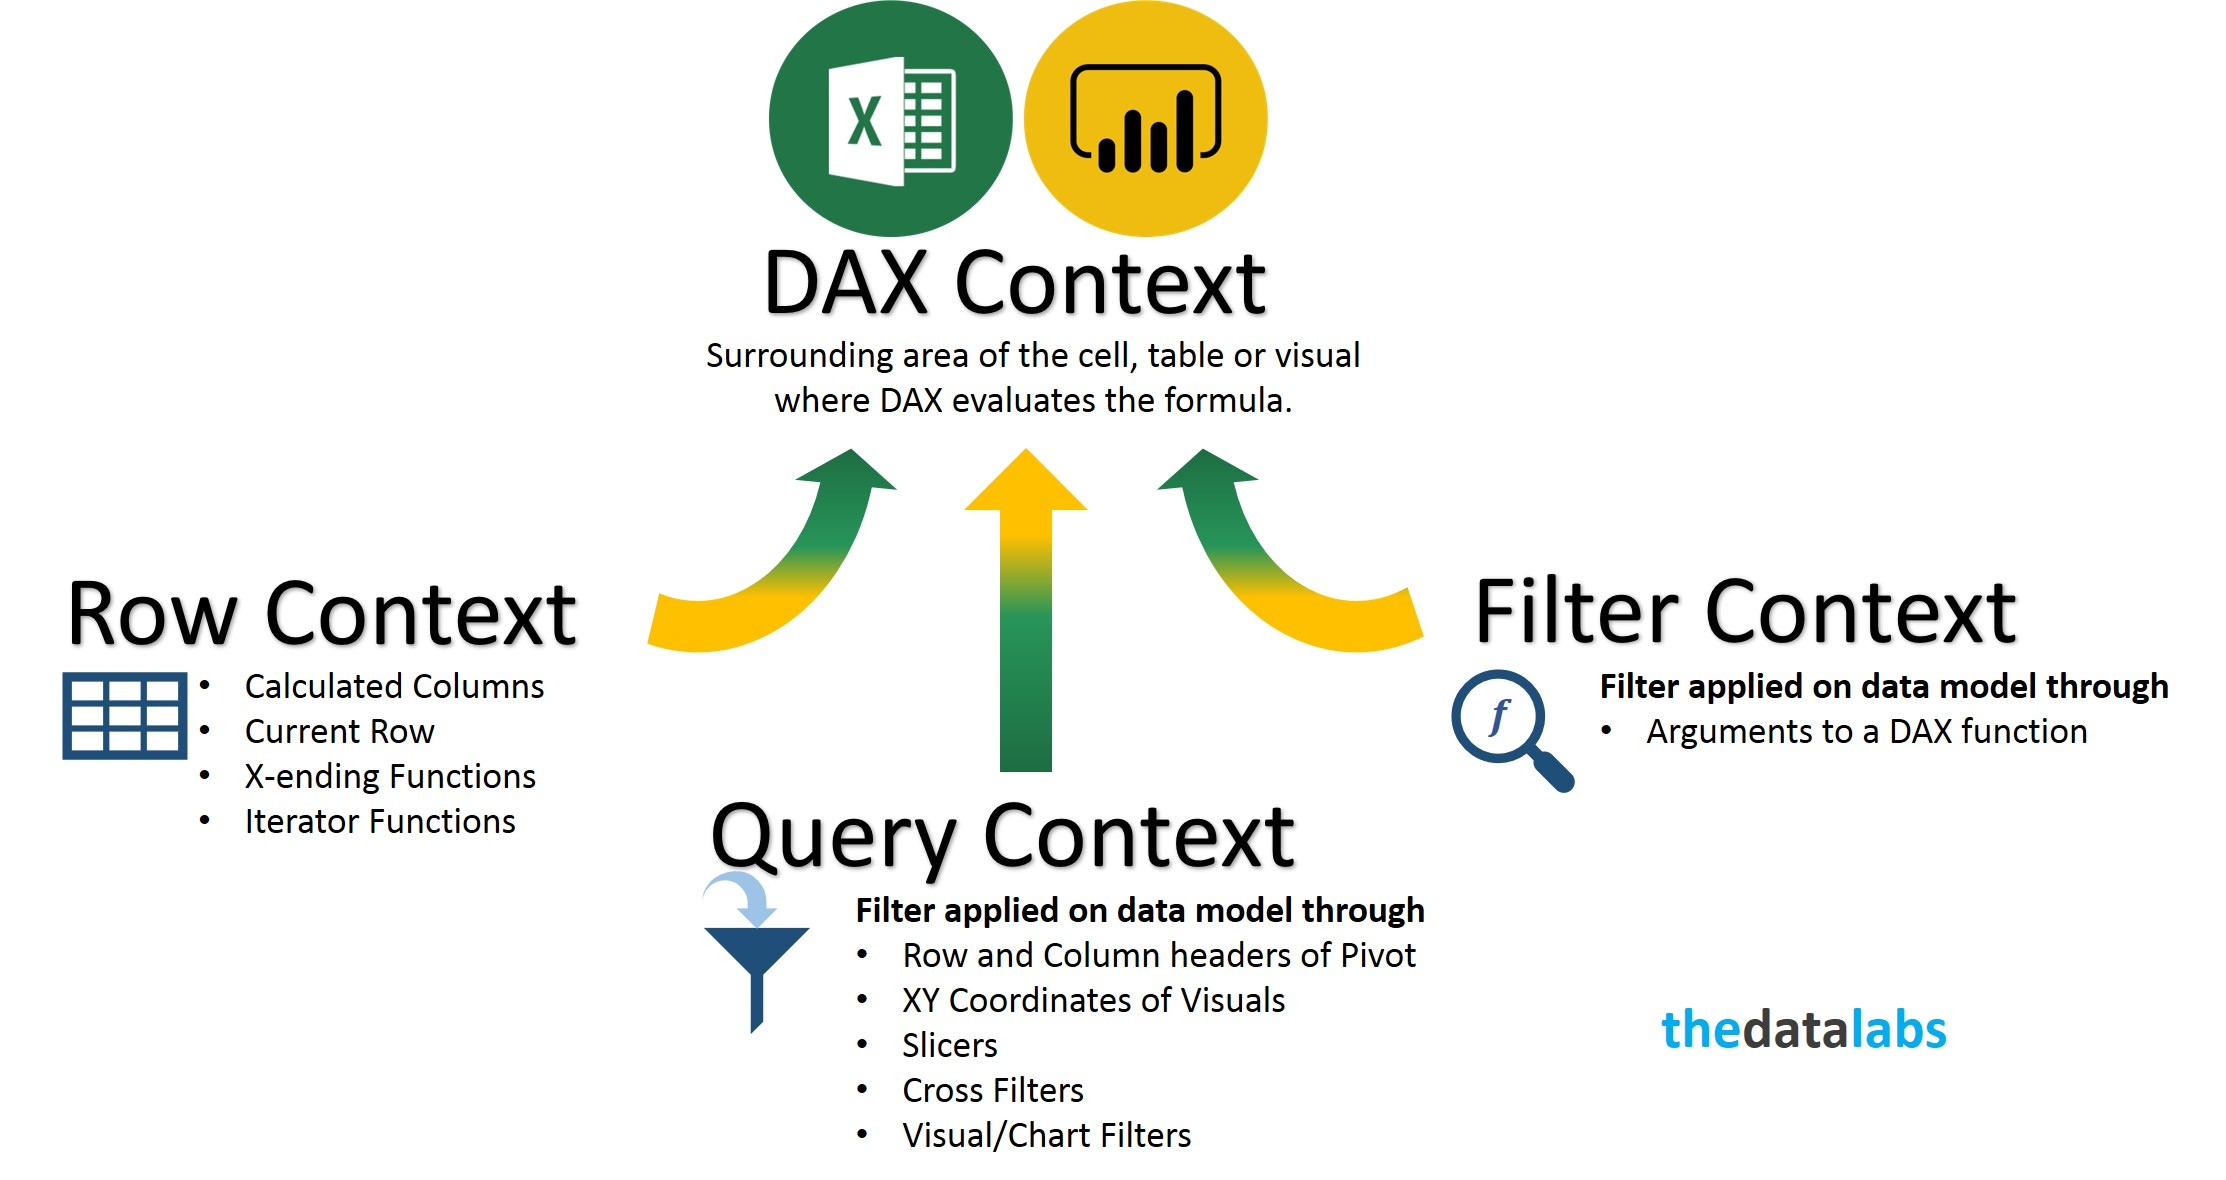 Filter Context - TheDataLabs